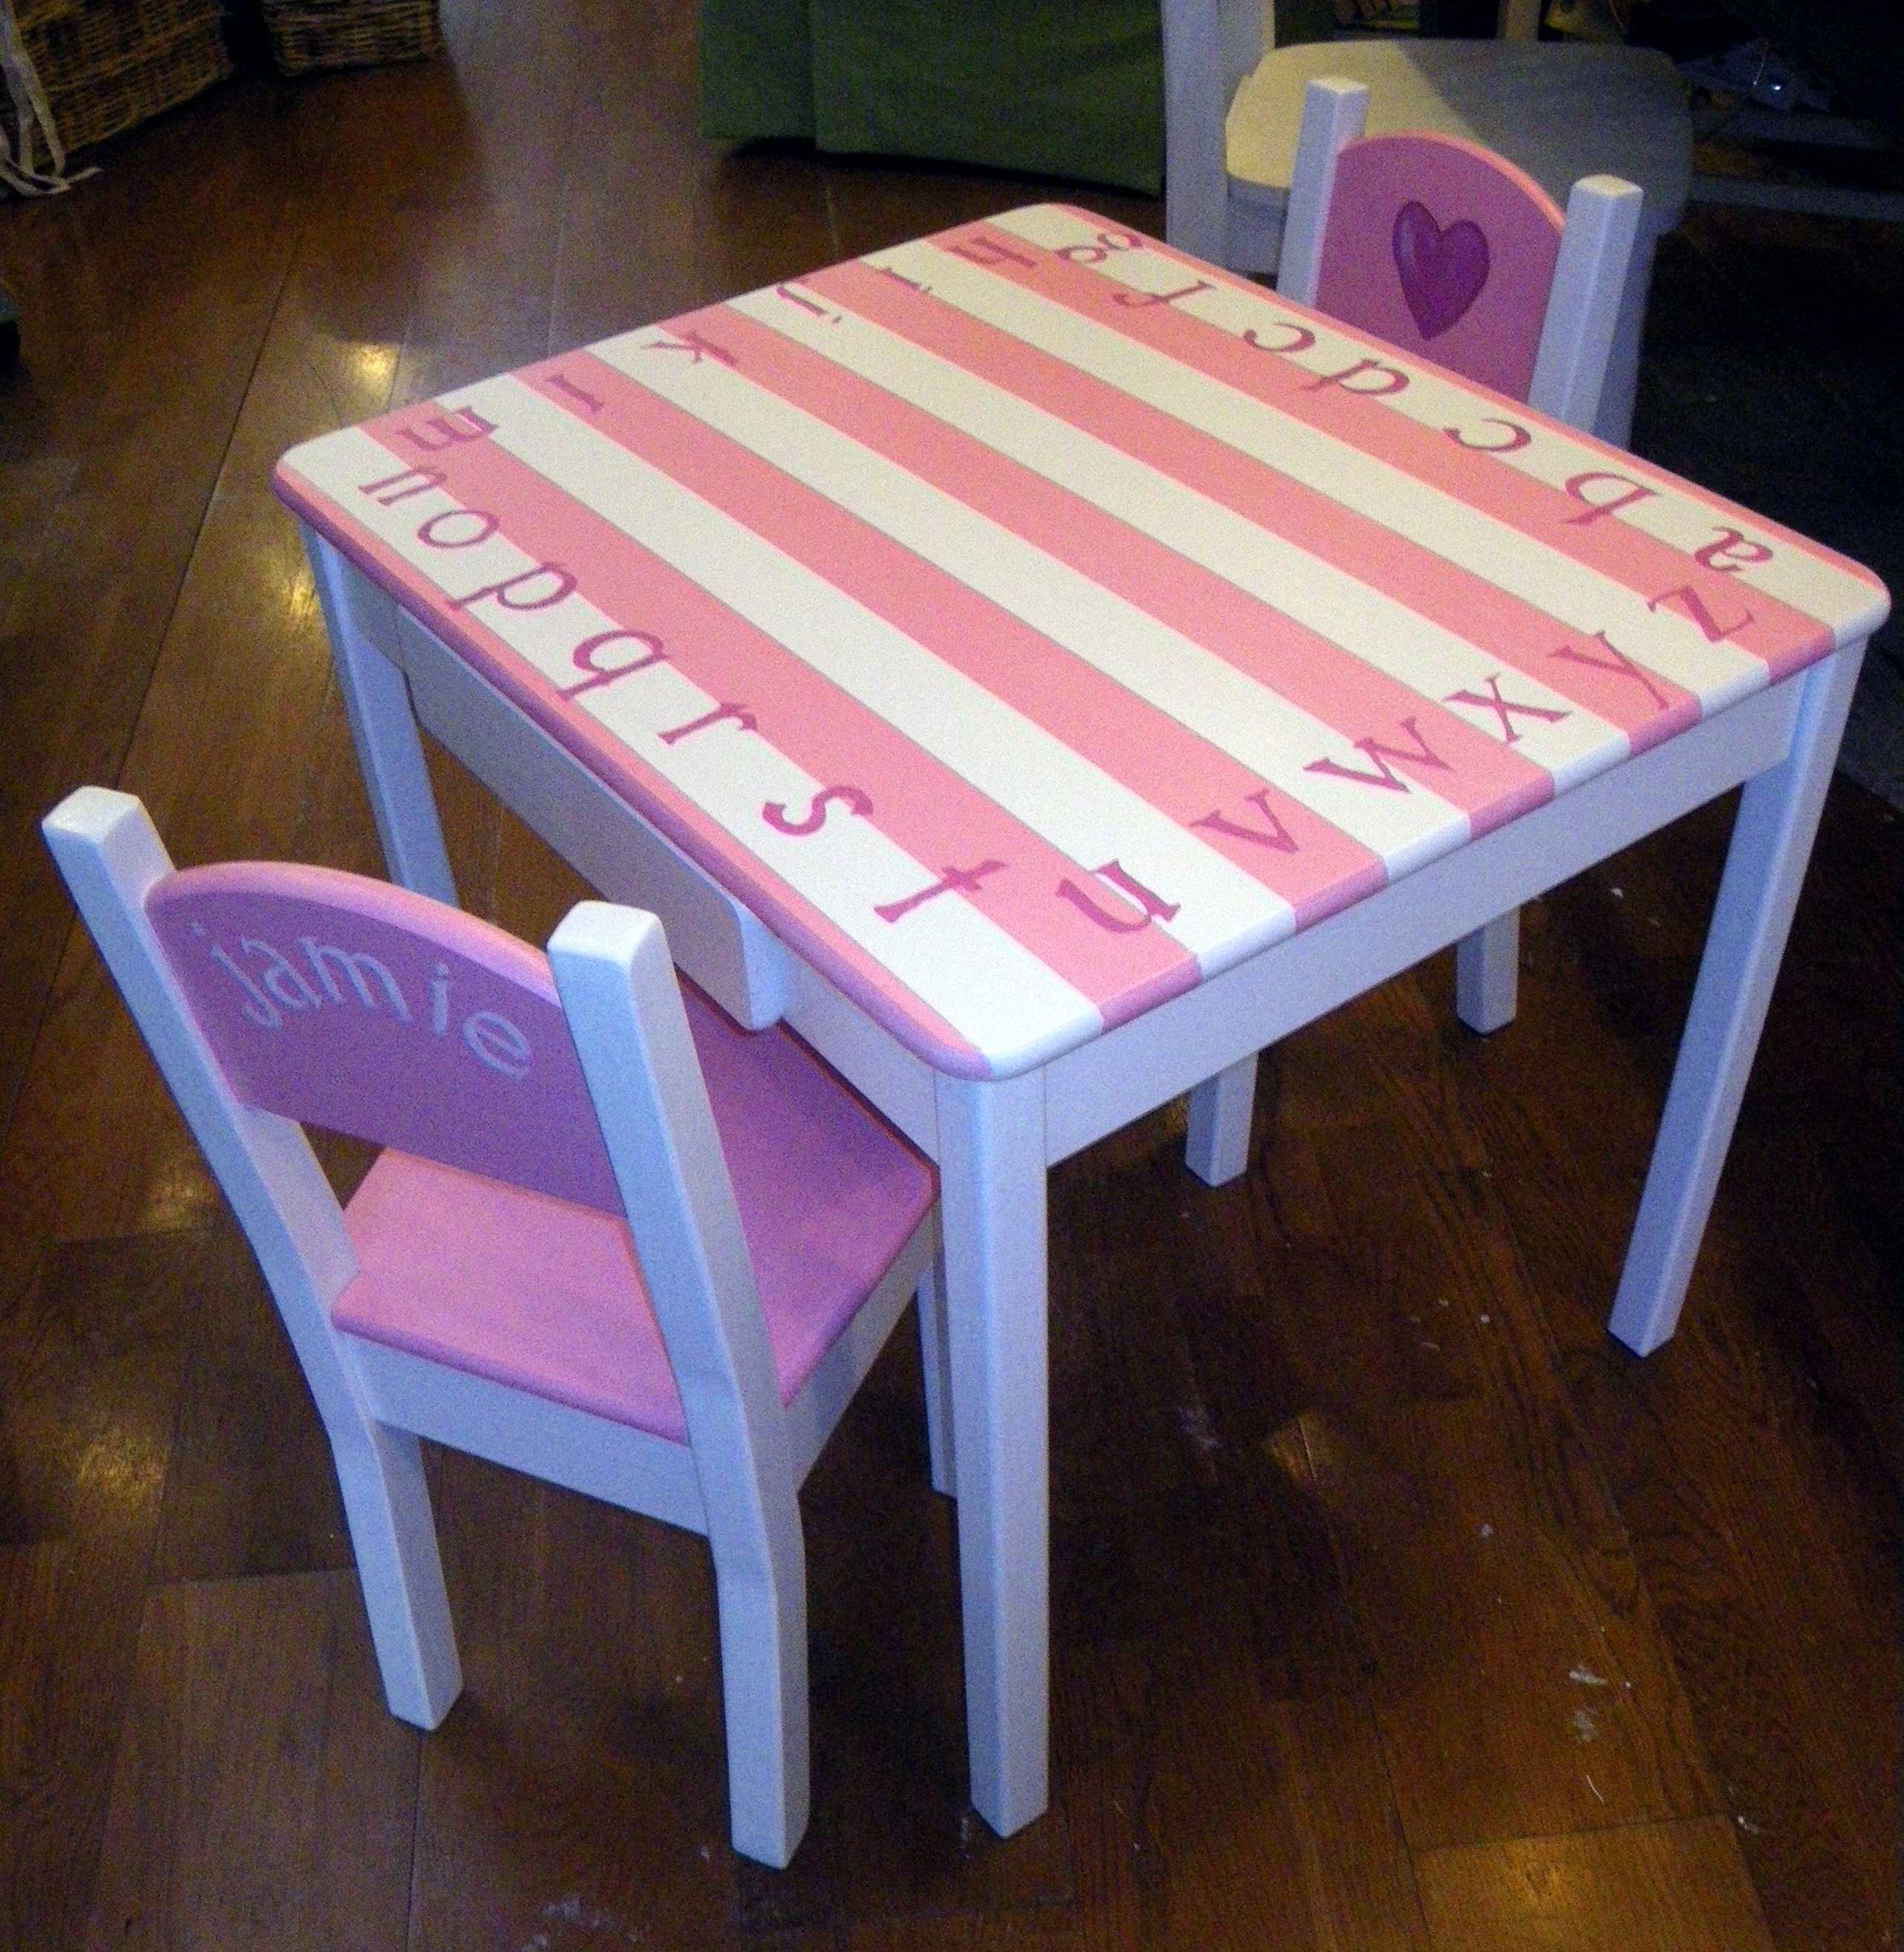 Hand-painted Childrenu0027s Table and Chair Set & Hand-painted Childrenu0027s Table and Chair Set u2013 Sea Green Designs LLC